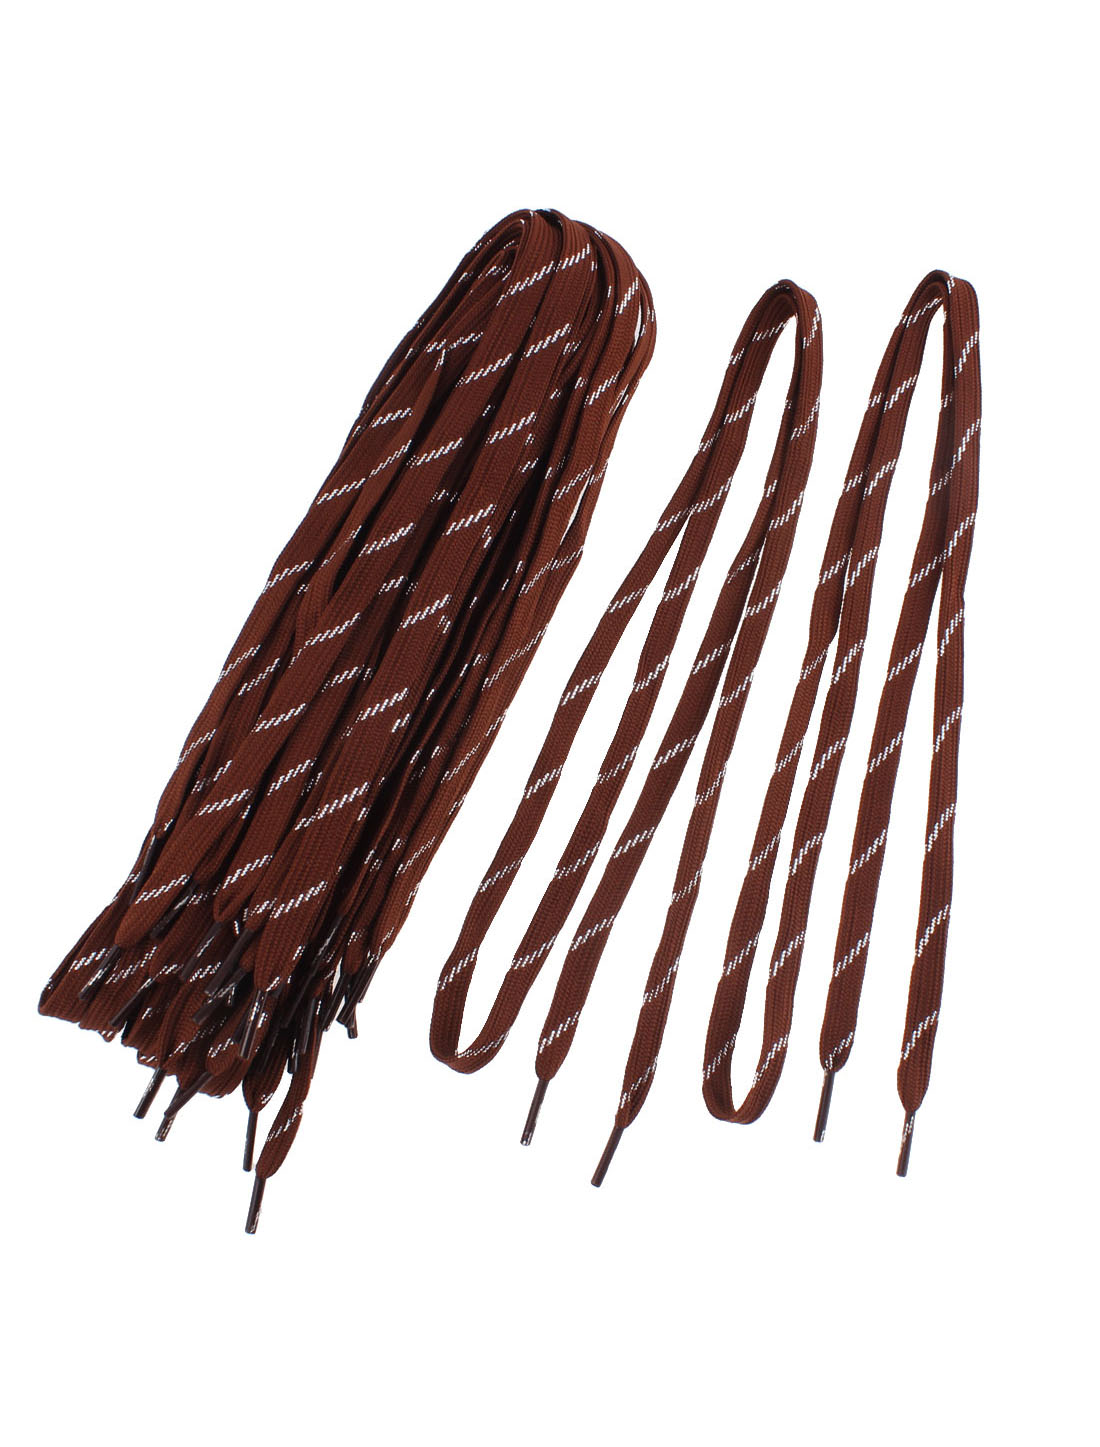 Sports Leisure Shoes Cotton Blend Flat Shoestring Shoelaces Chocolate Color 10 Pairs